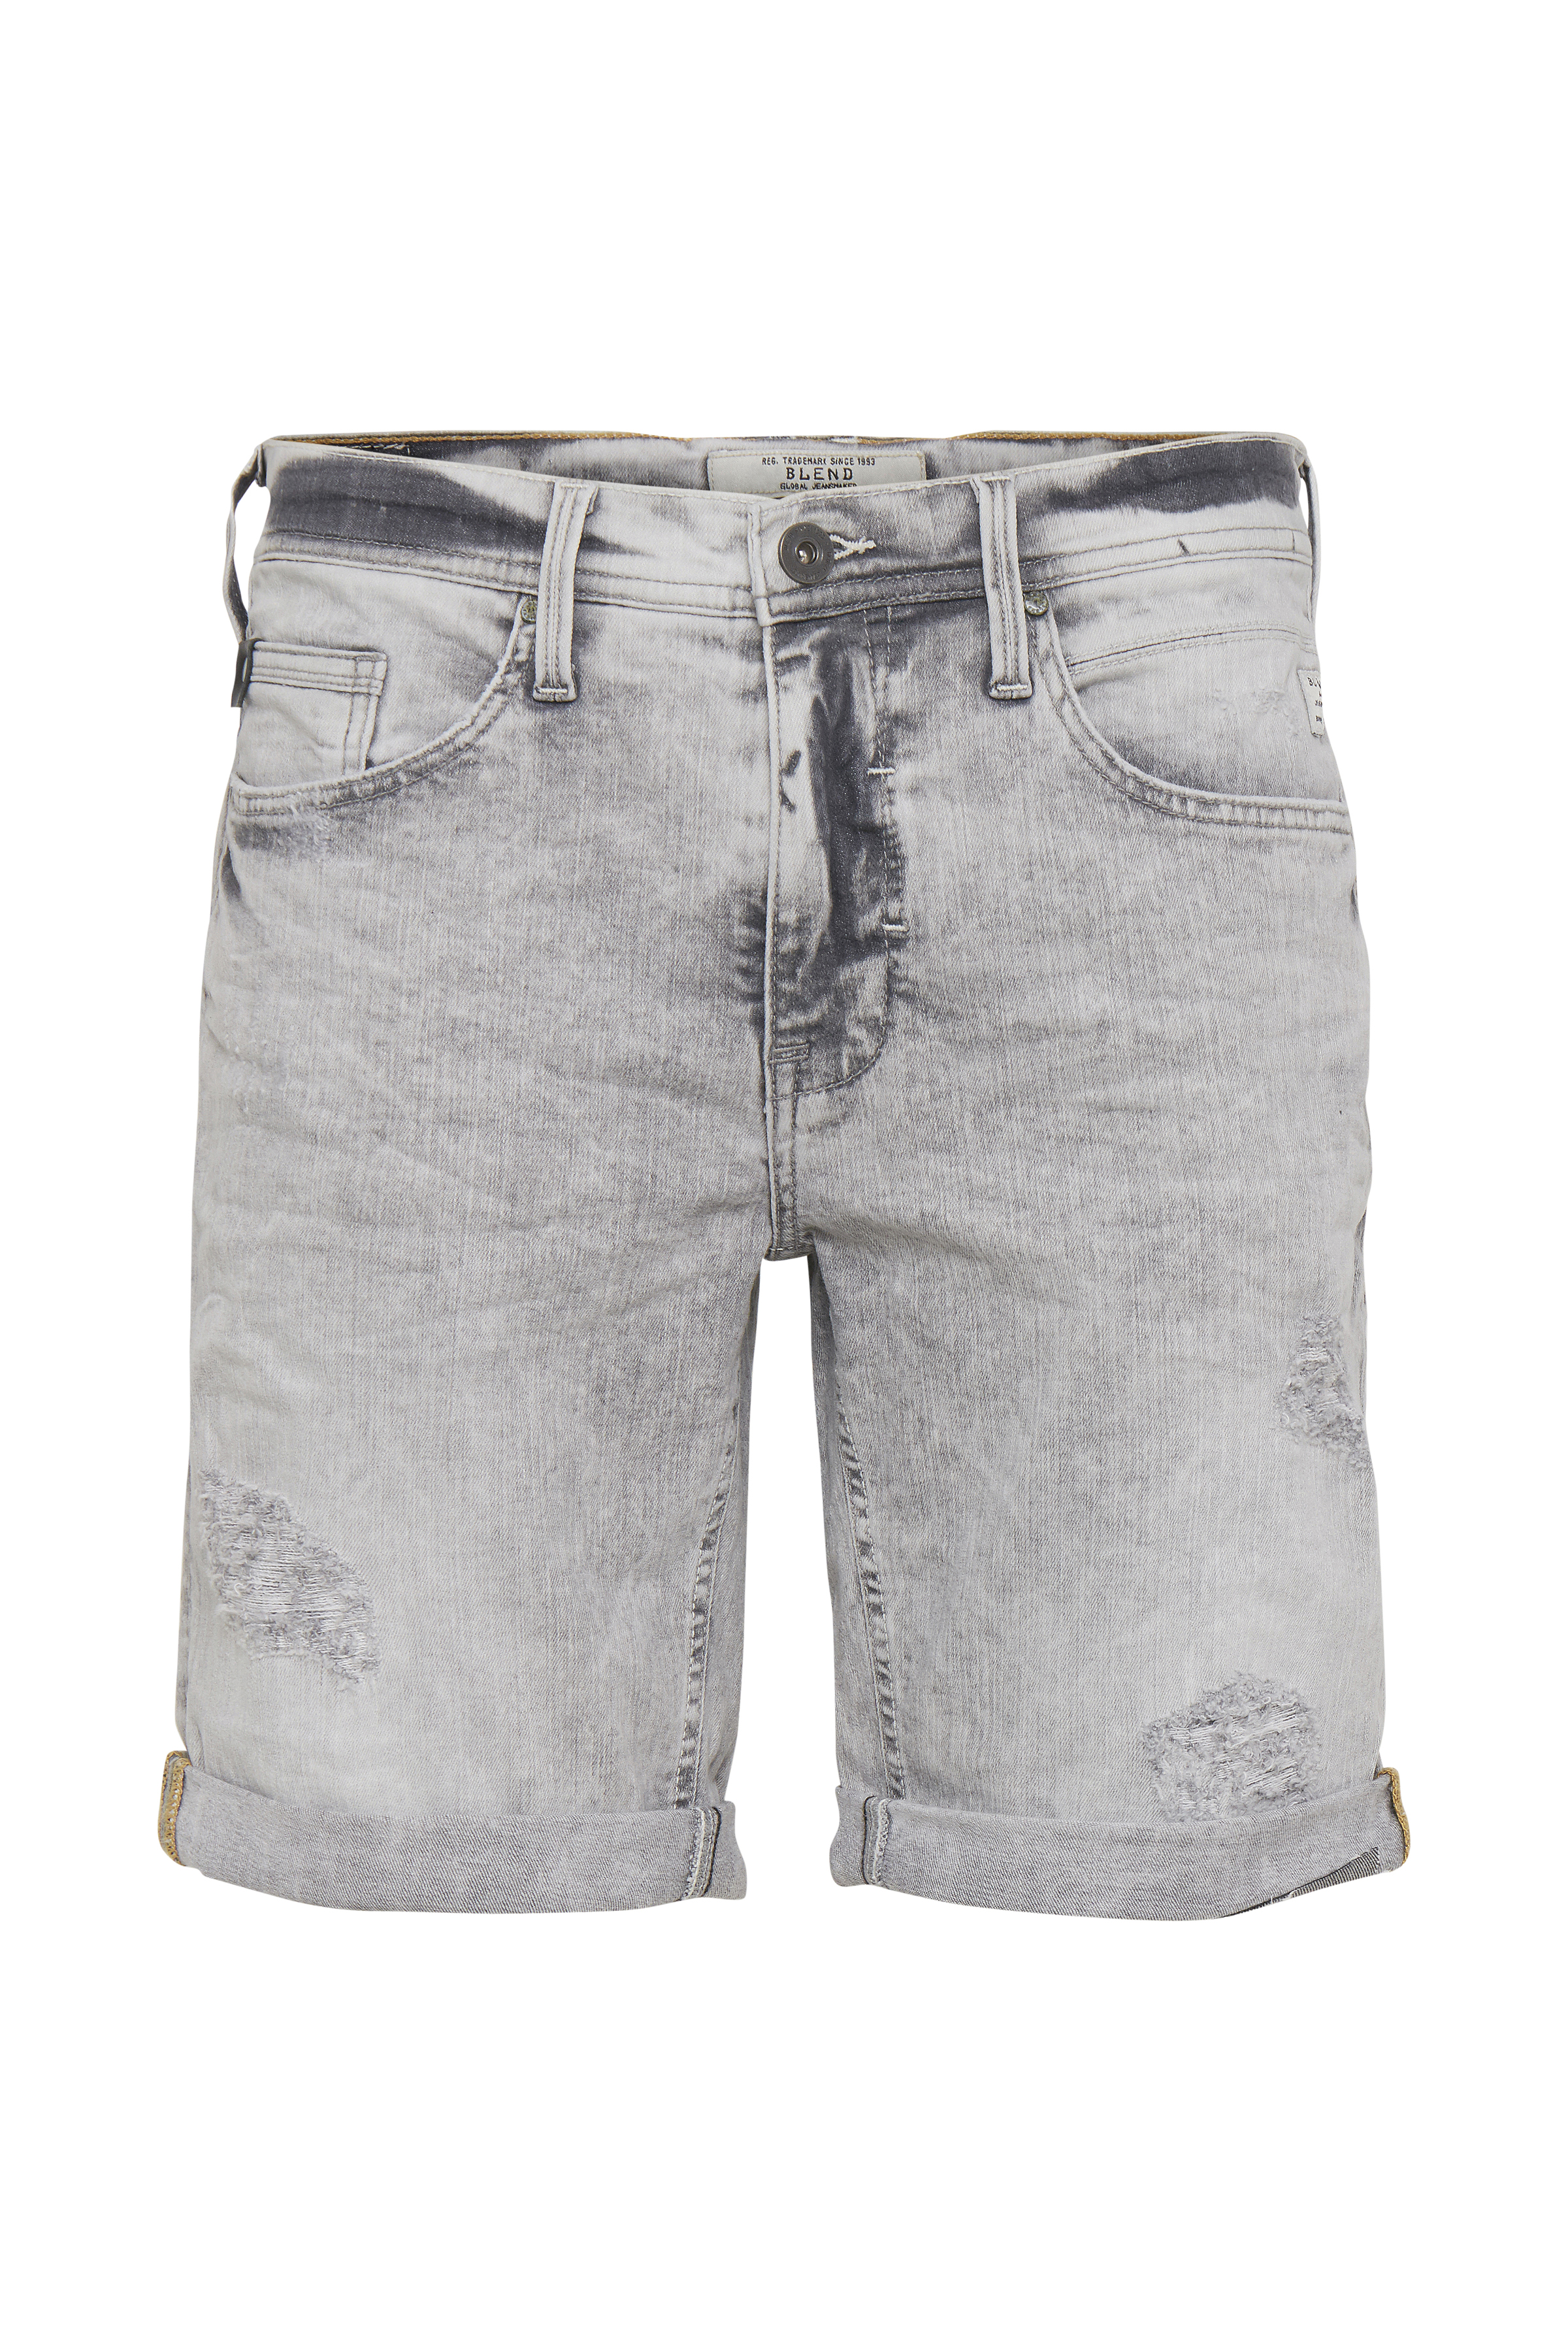 Denim light grey Denimshorts – Køb Denim light grey Denimshorts fra str. M-XXL her